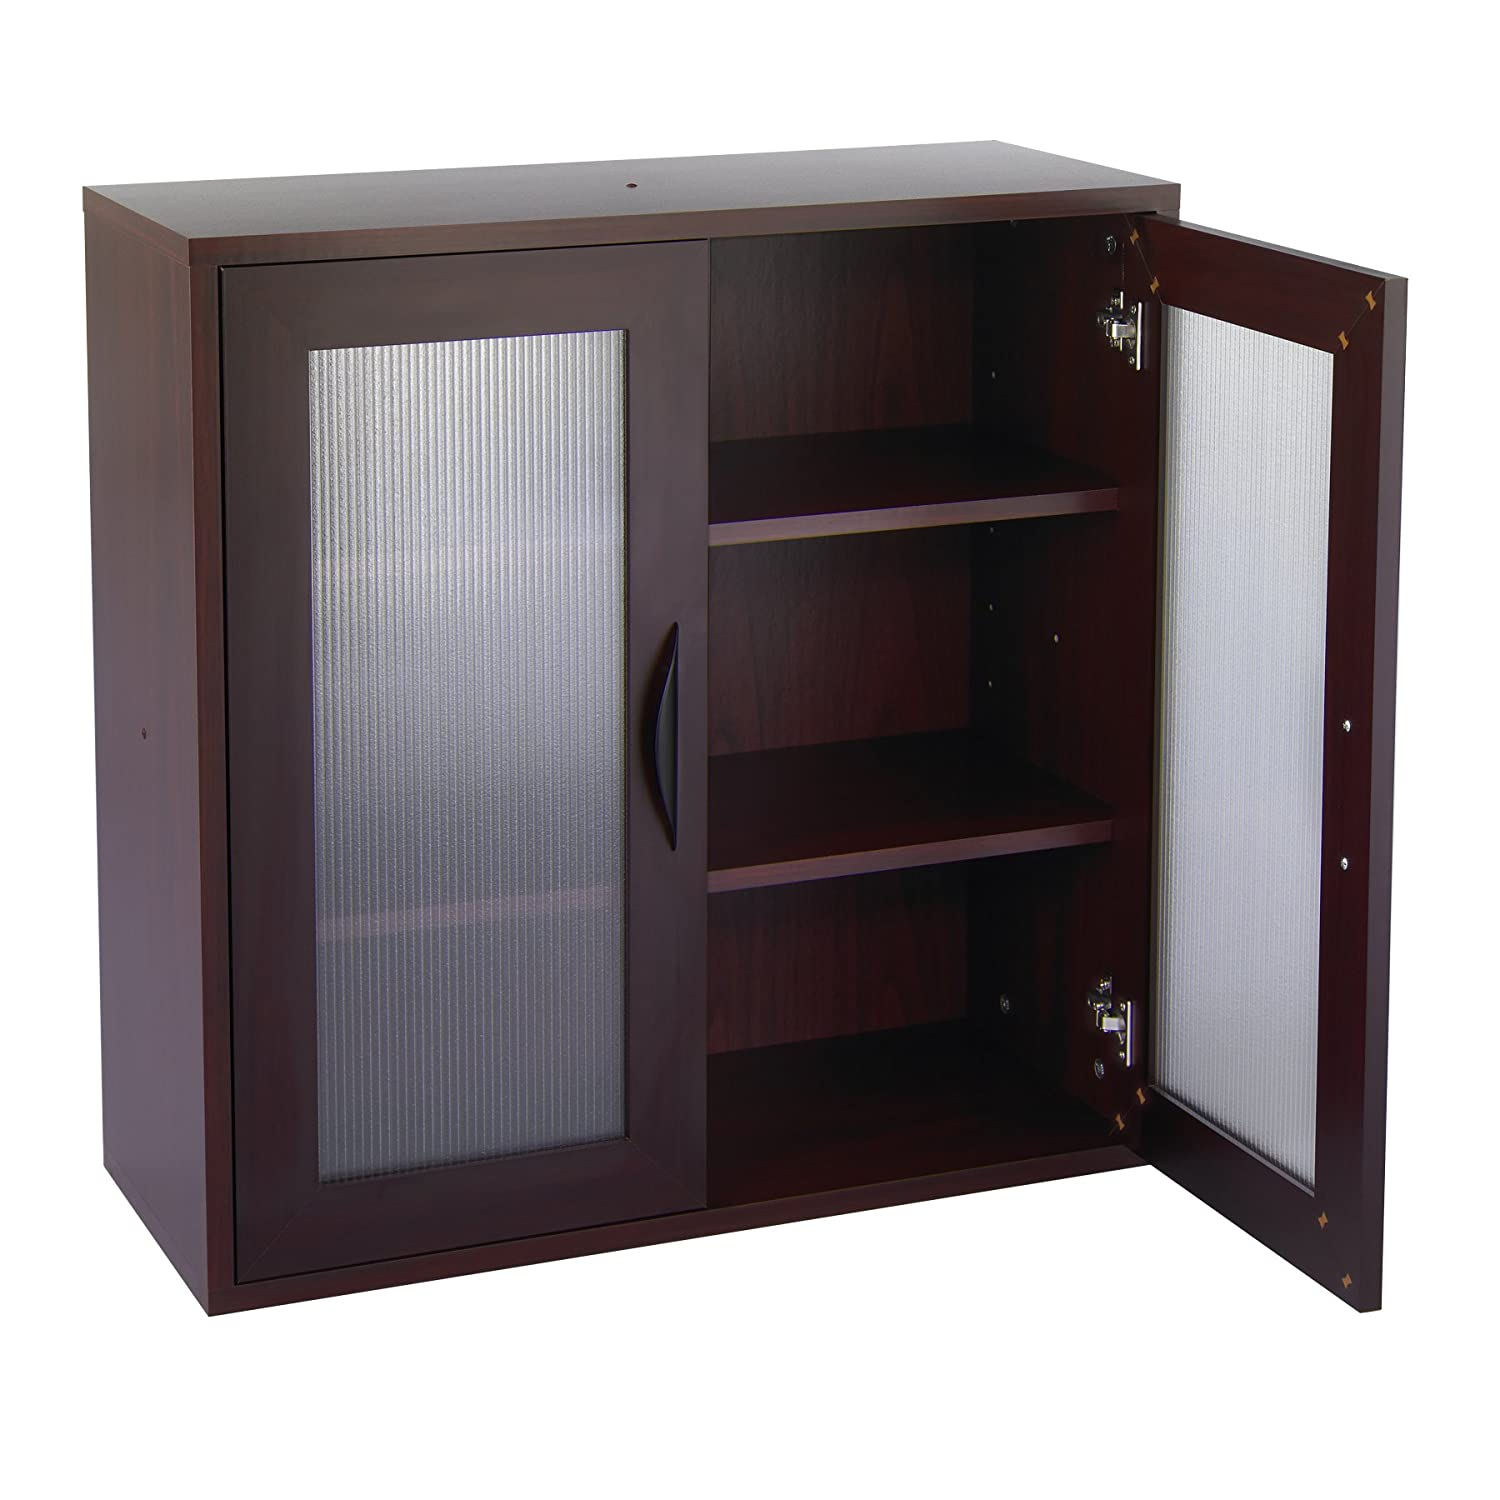 Amazon.com: Safco Products 9443MH Apres Modular Storage Tall Cabinet, 2  Door, Mahogany: Kitchen & Dining - Amazon.com: Safco Products 9443MH Apres Modular Storage Tall